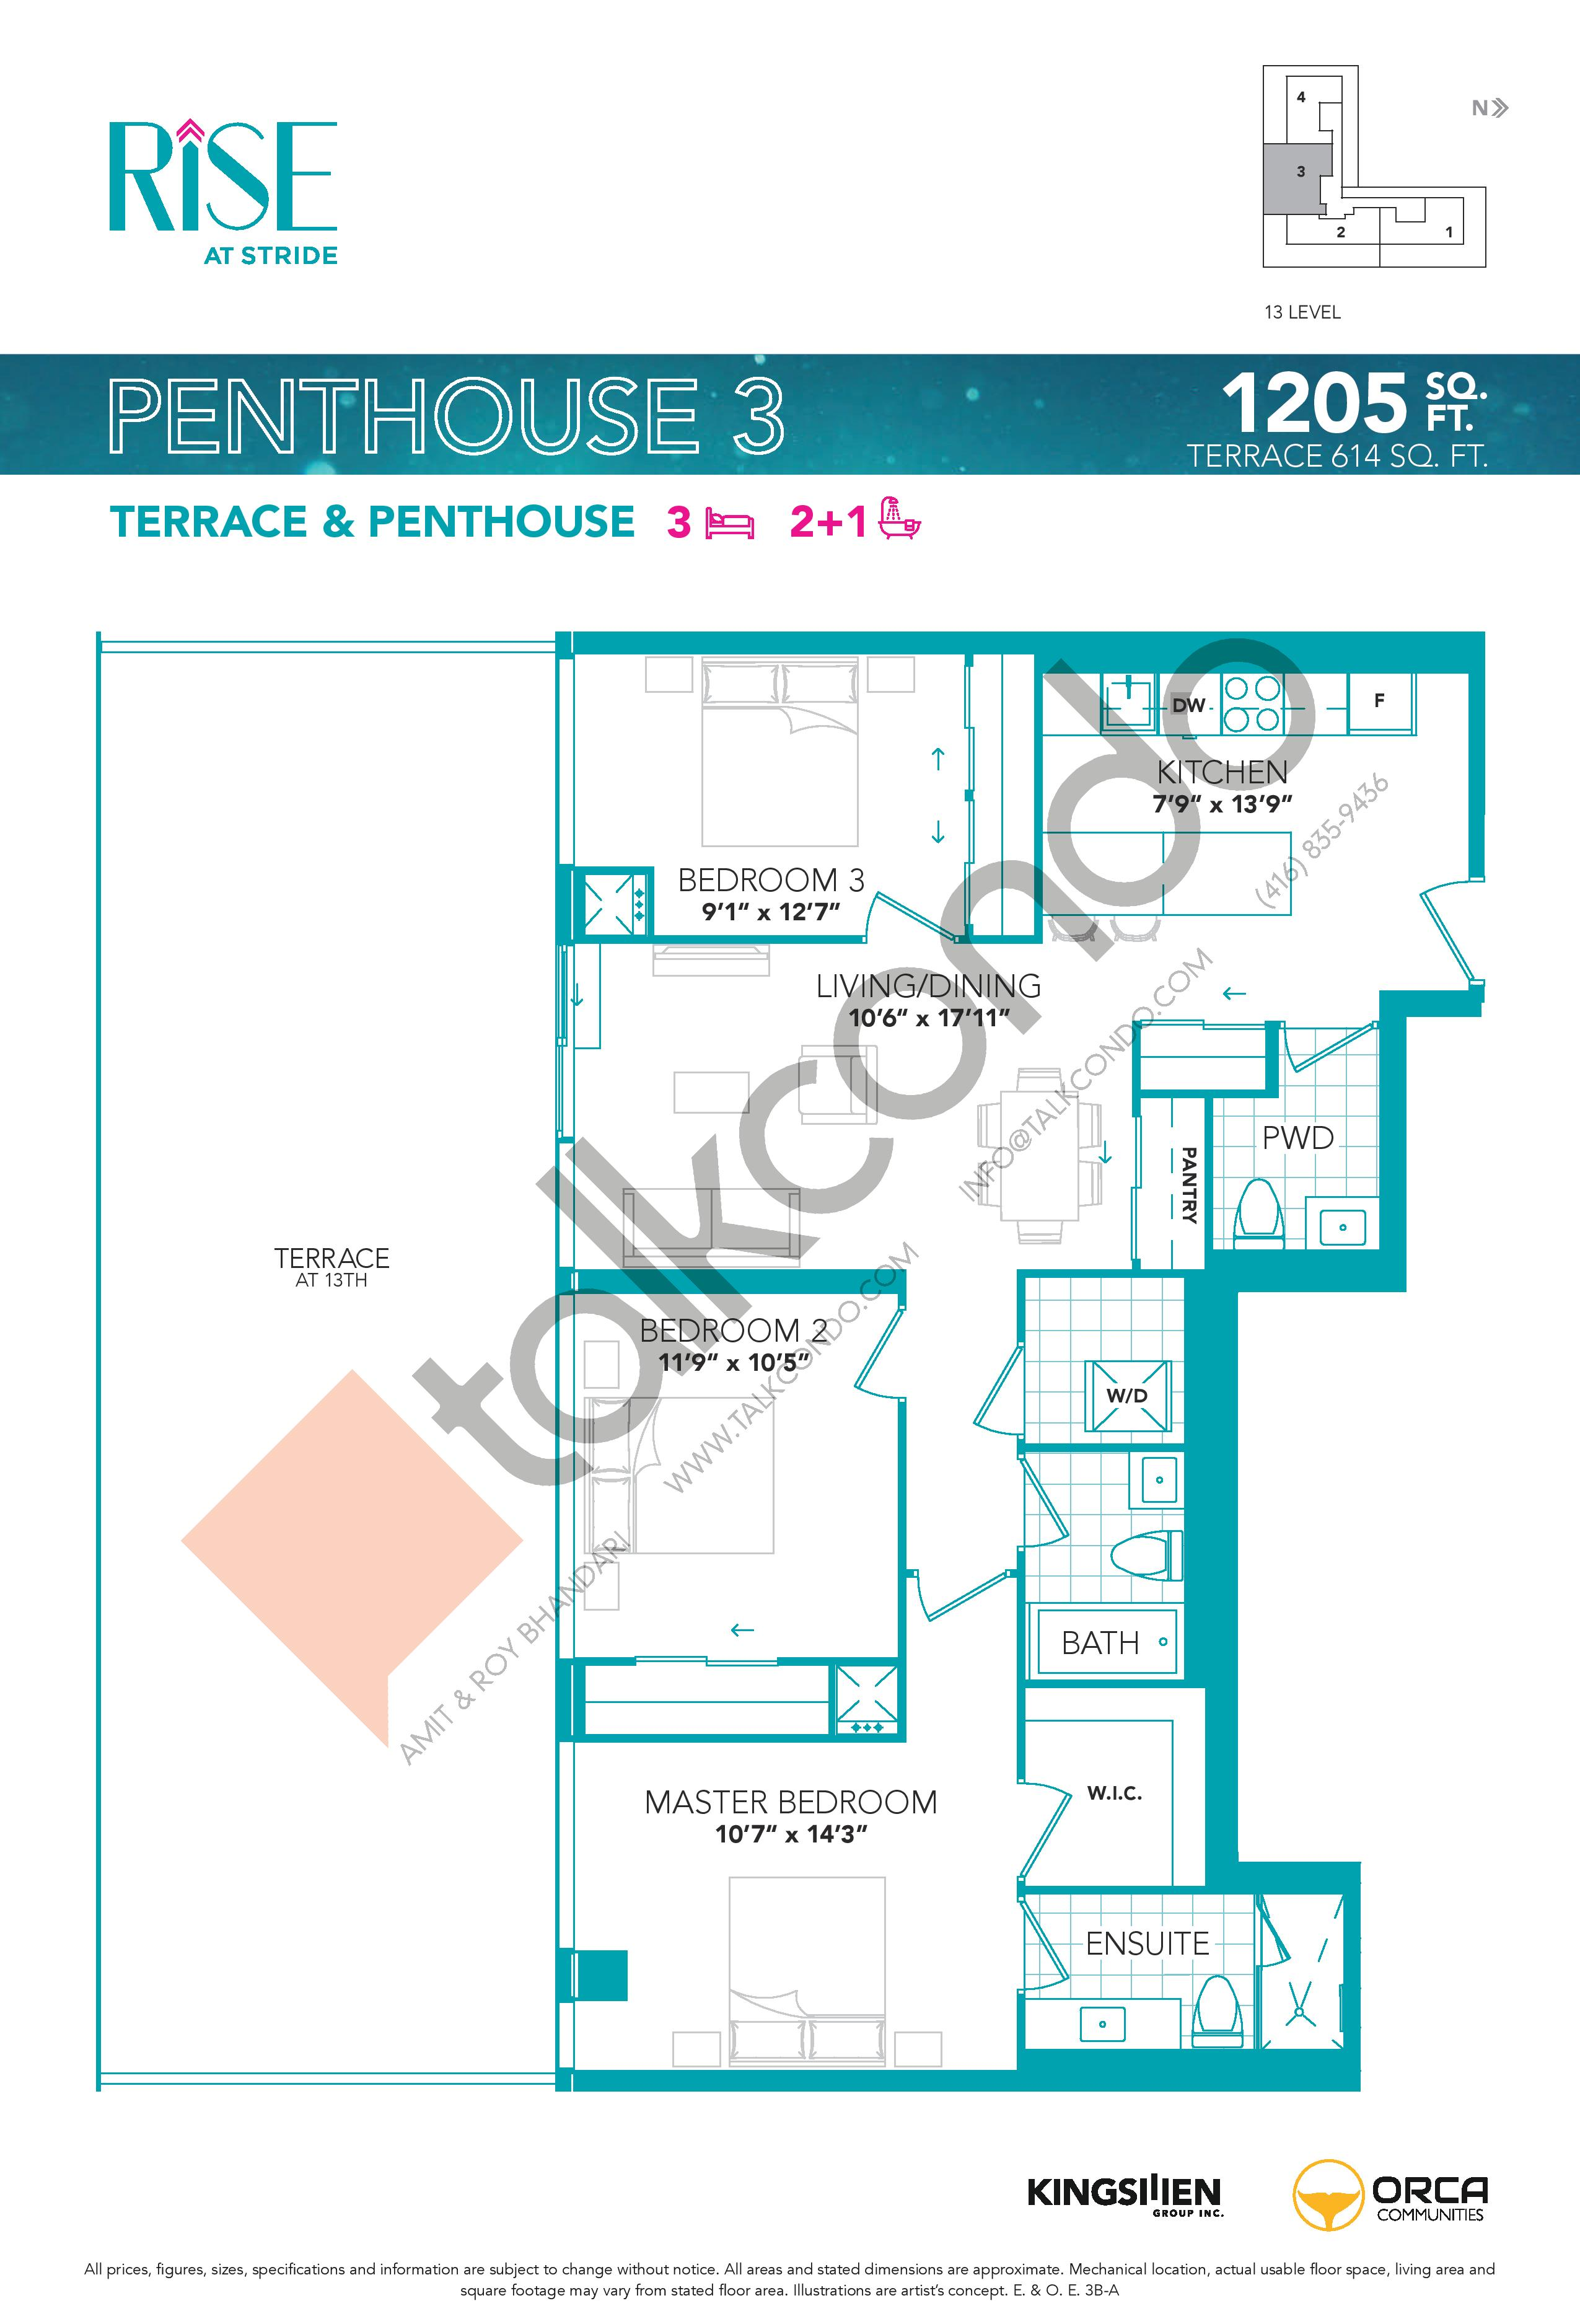 Penthouse 3 Floor Plan at Rise at Stride Condos - 1205 sq.ft